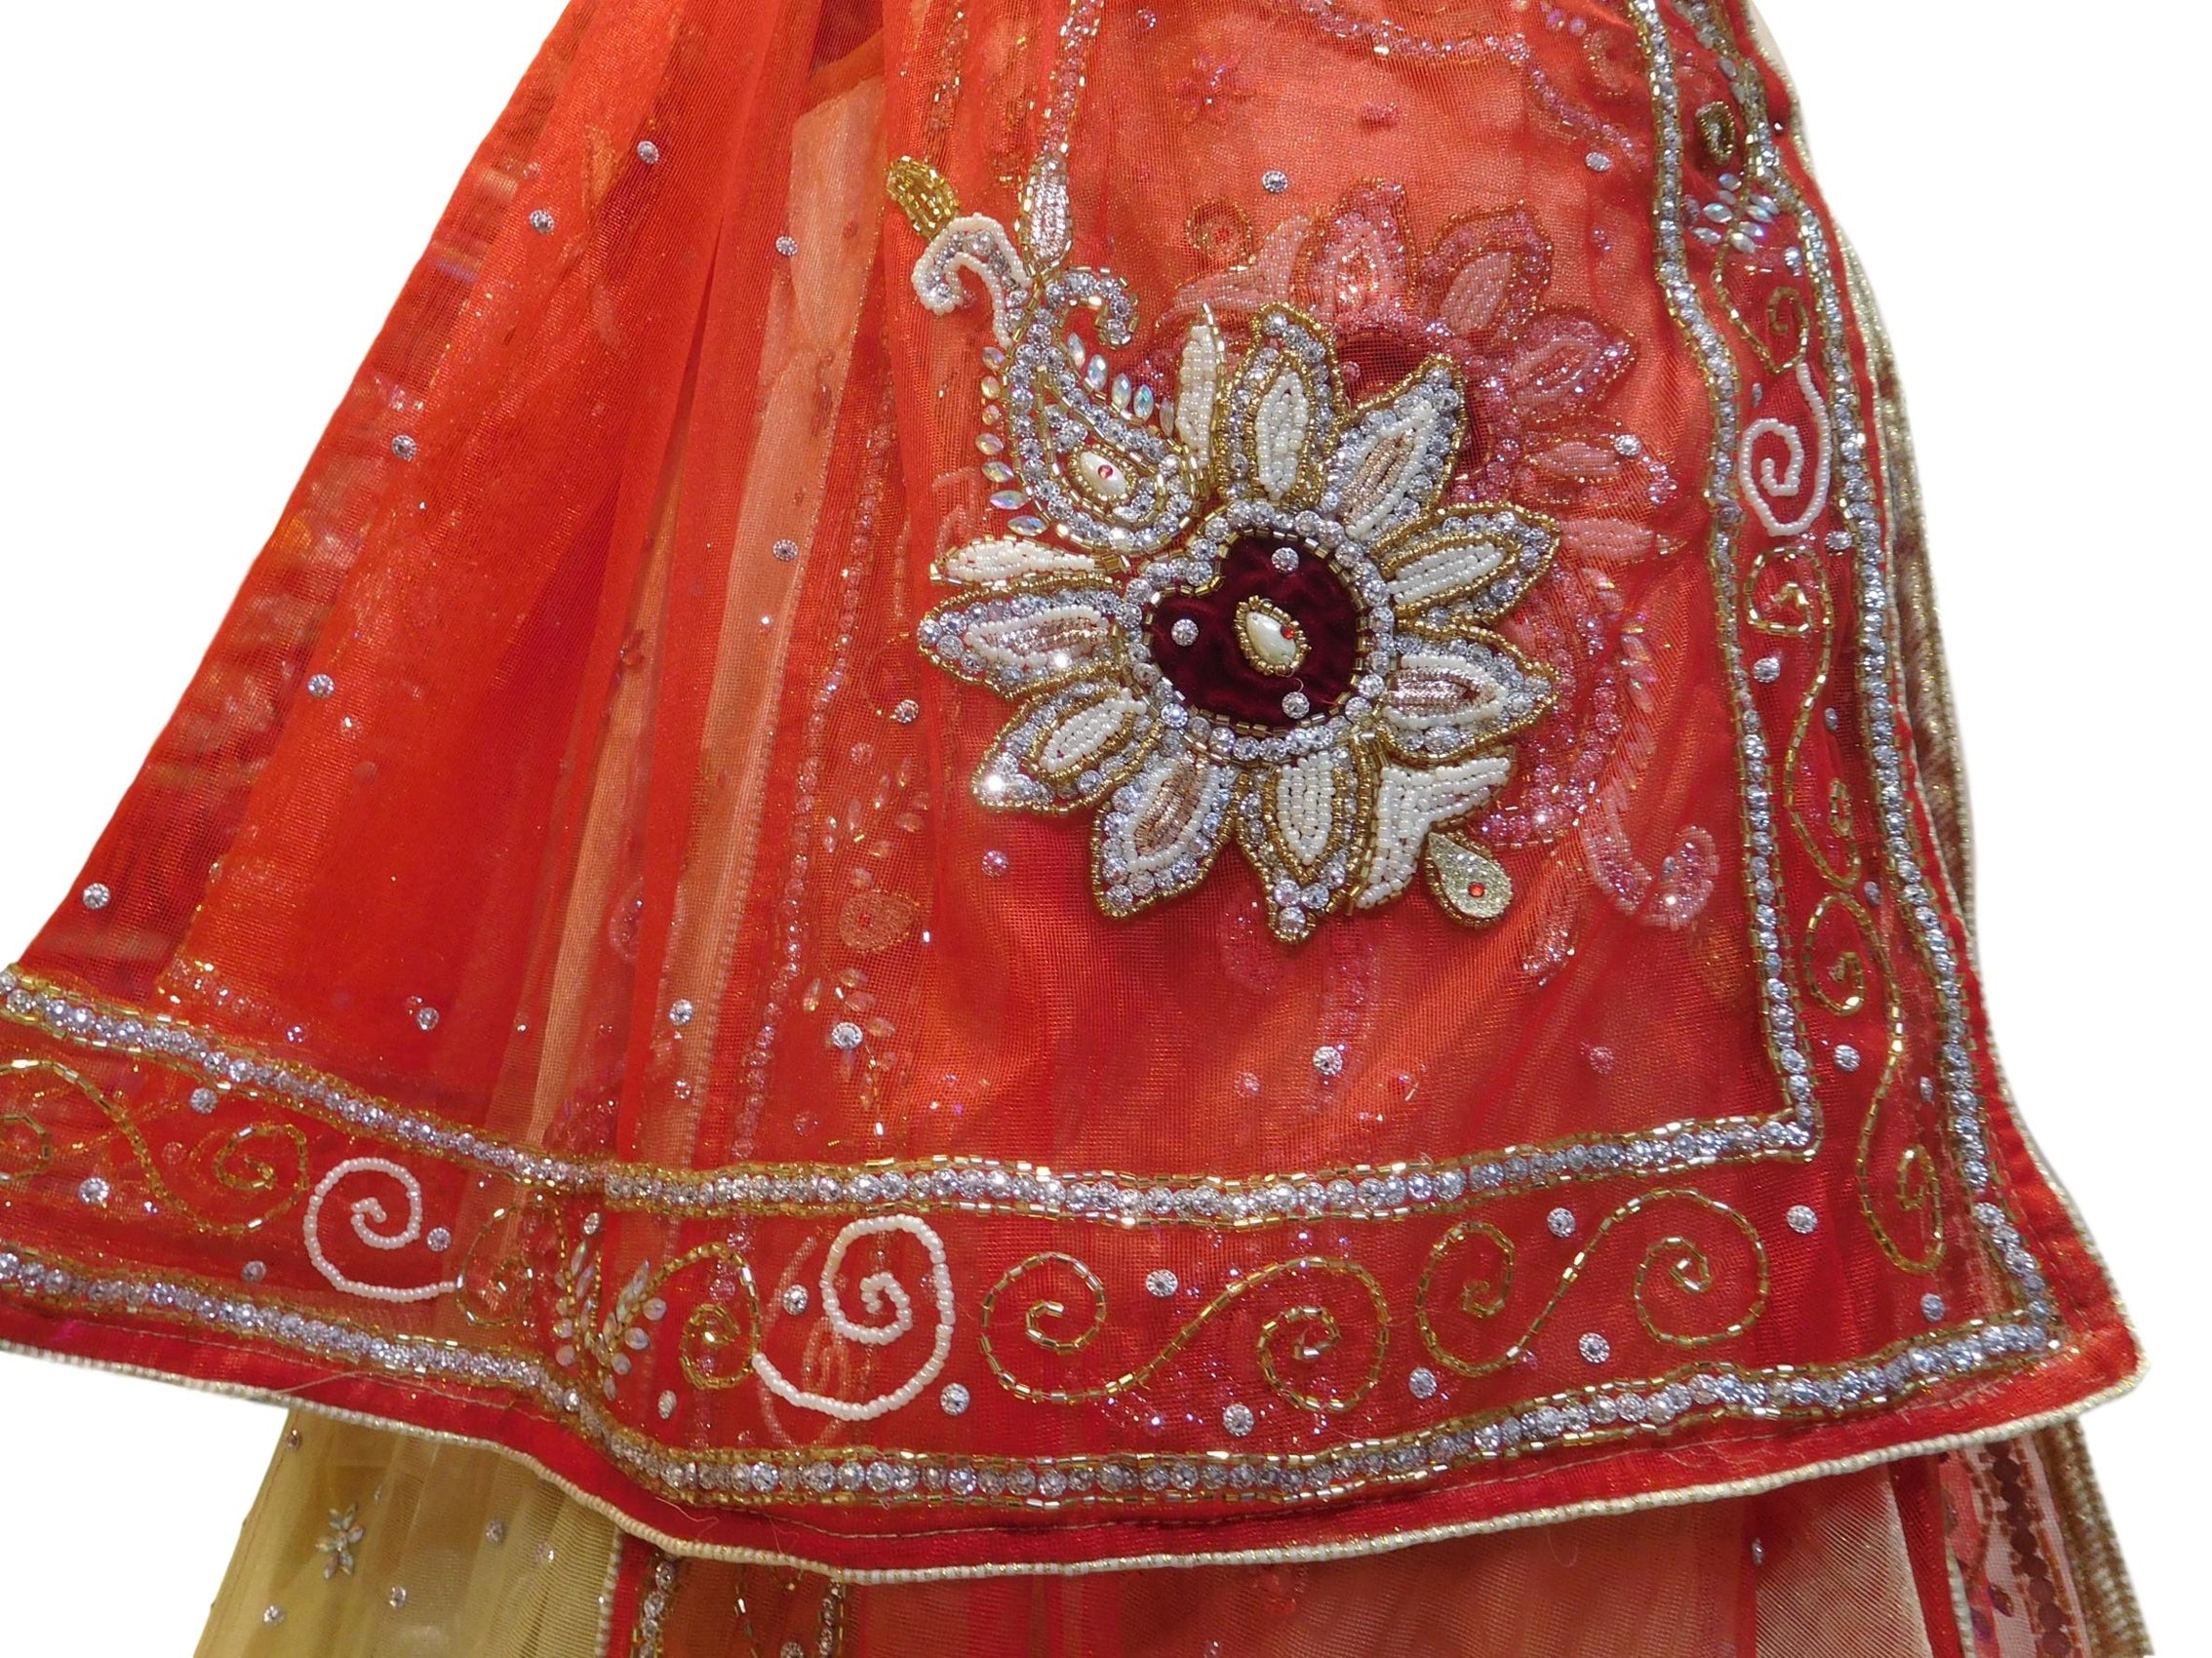 Cream & Red Designer Wedding Partywear Net Bullion Beads Stone Pearl Hand Embroidery Work Bridal Lahenga Choli Dupatta Semistitched LAE121